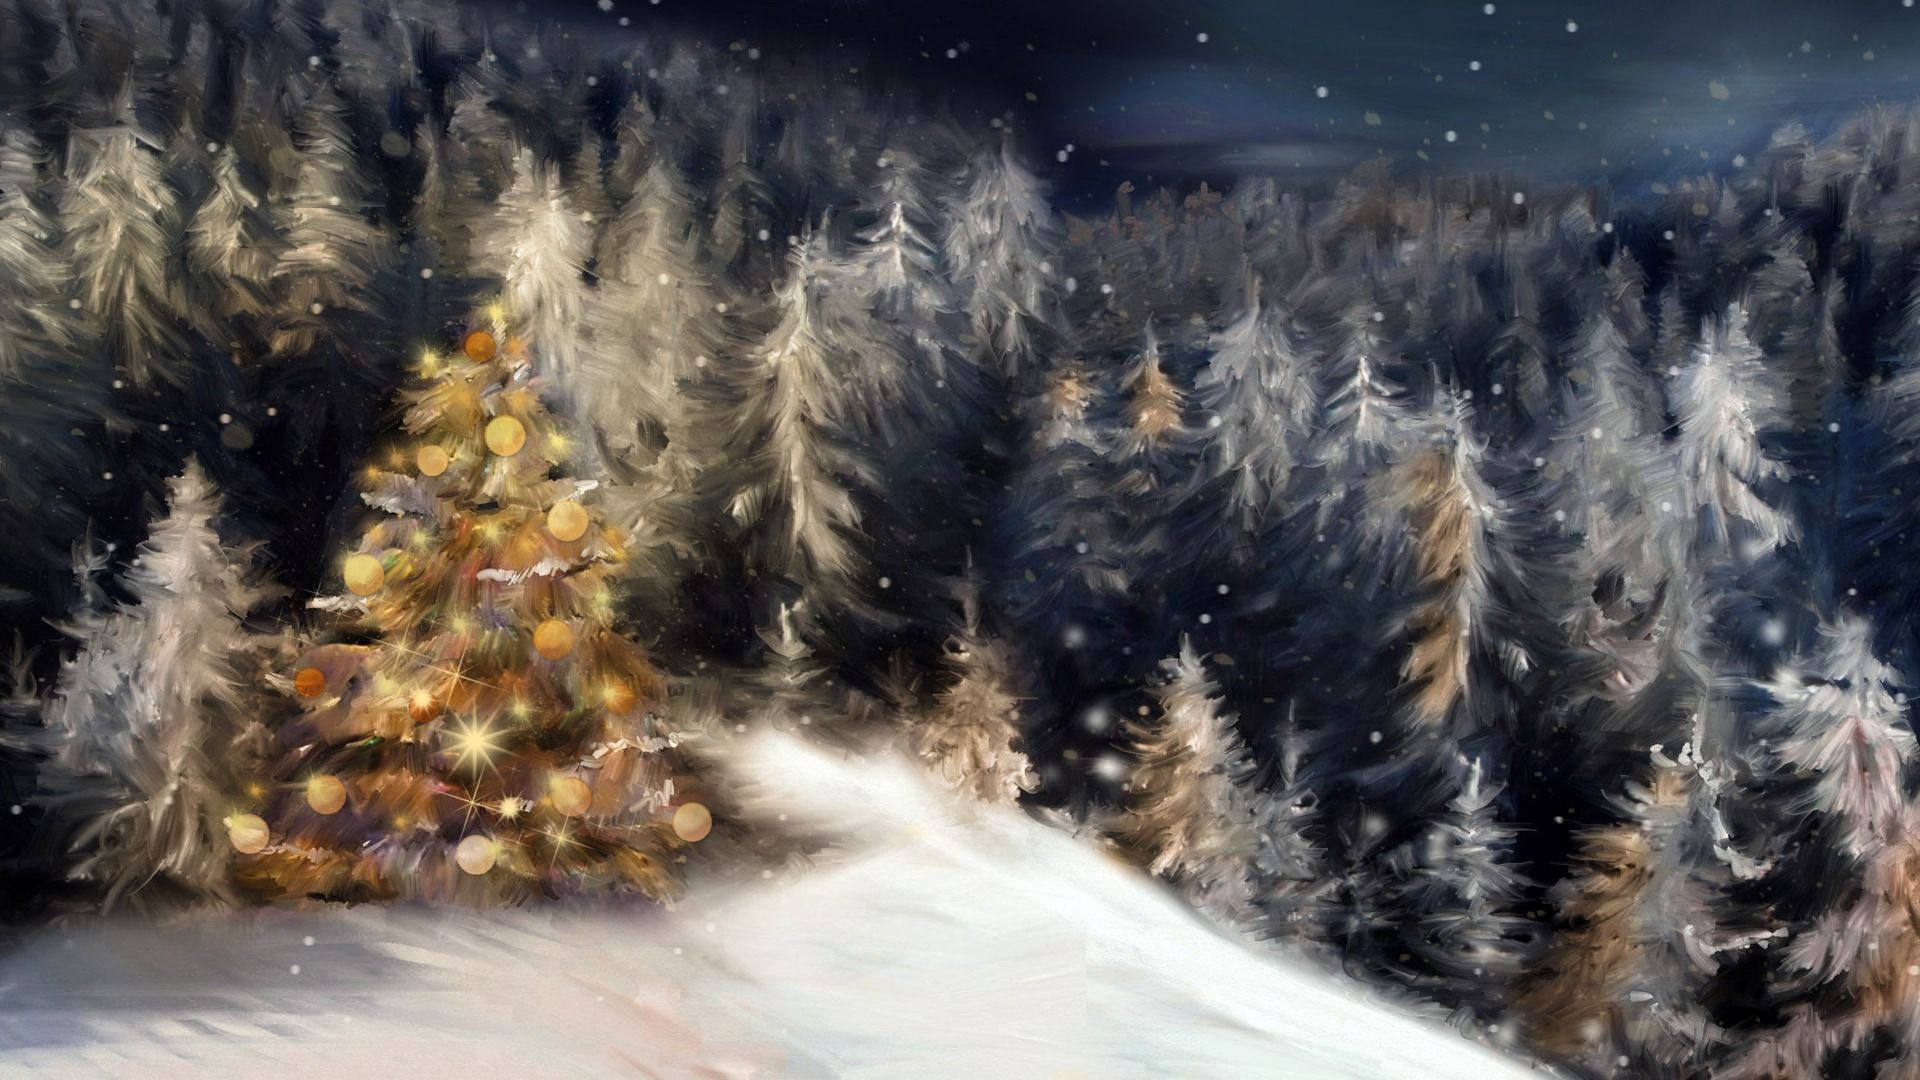 Download Wallpaper Holiday Snow Tree Winter Christmas Tree New Year Night Forest Section New Year Christmas In Resolution 1920x1080 Fond Ecran Noel